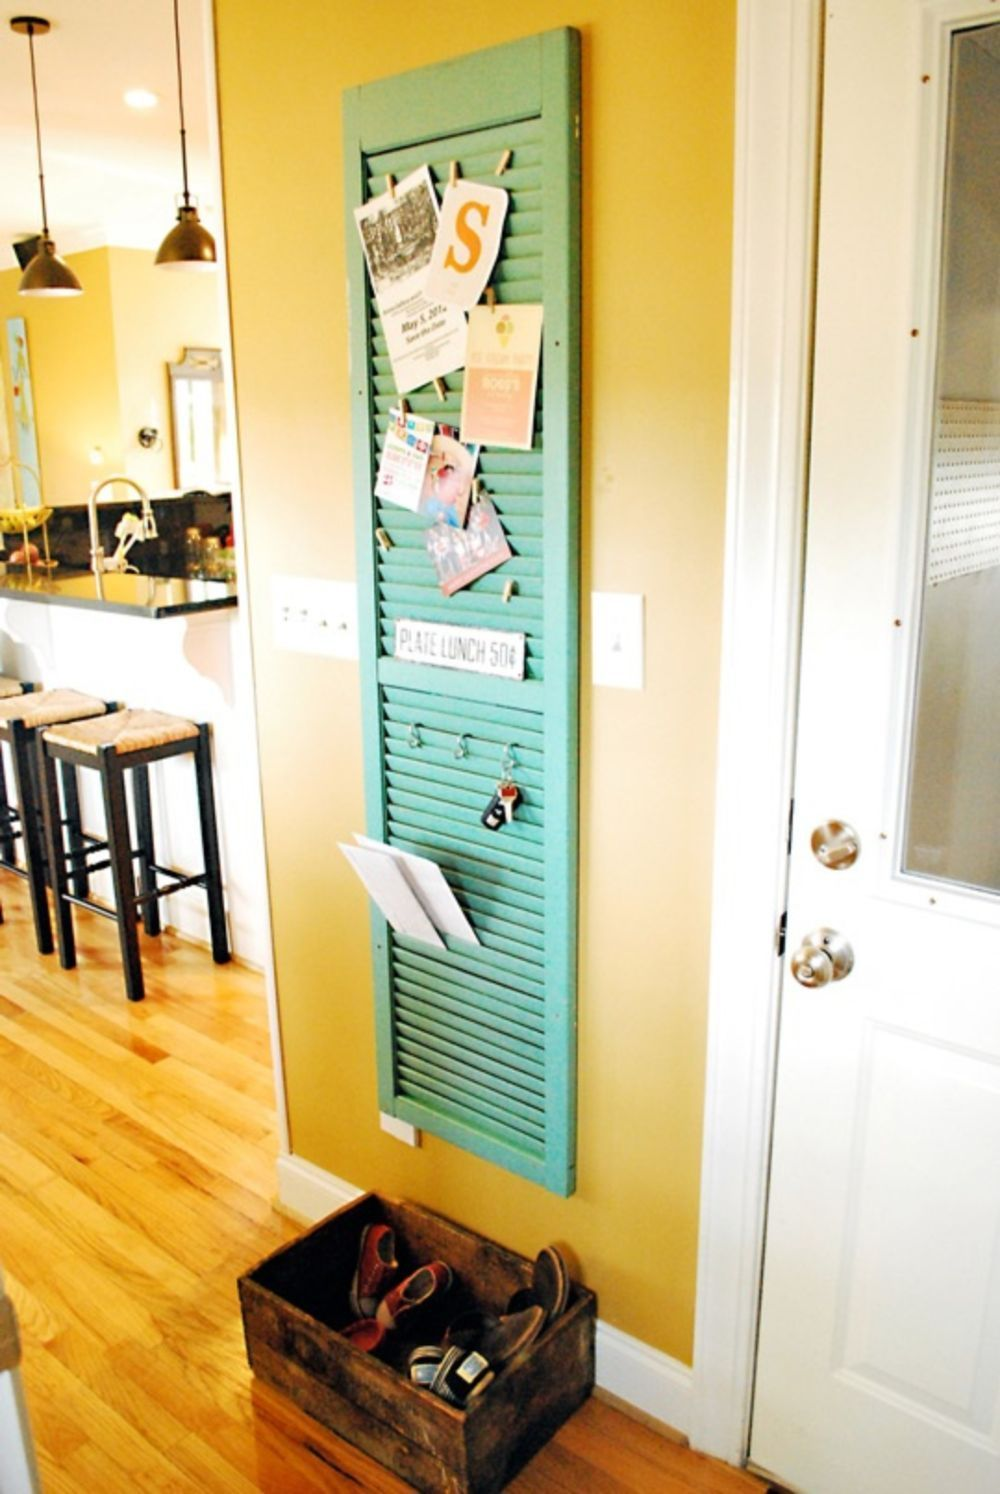 Charming Apartment Decor Ideas for Small Space (6) | Organization in ...